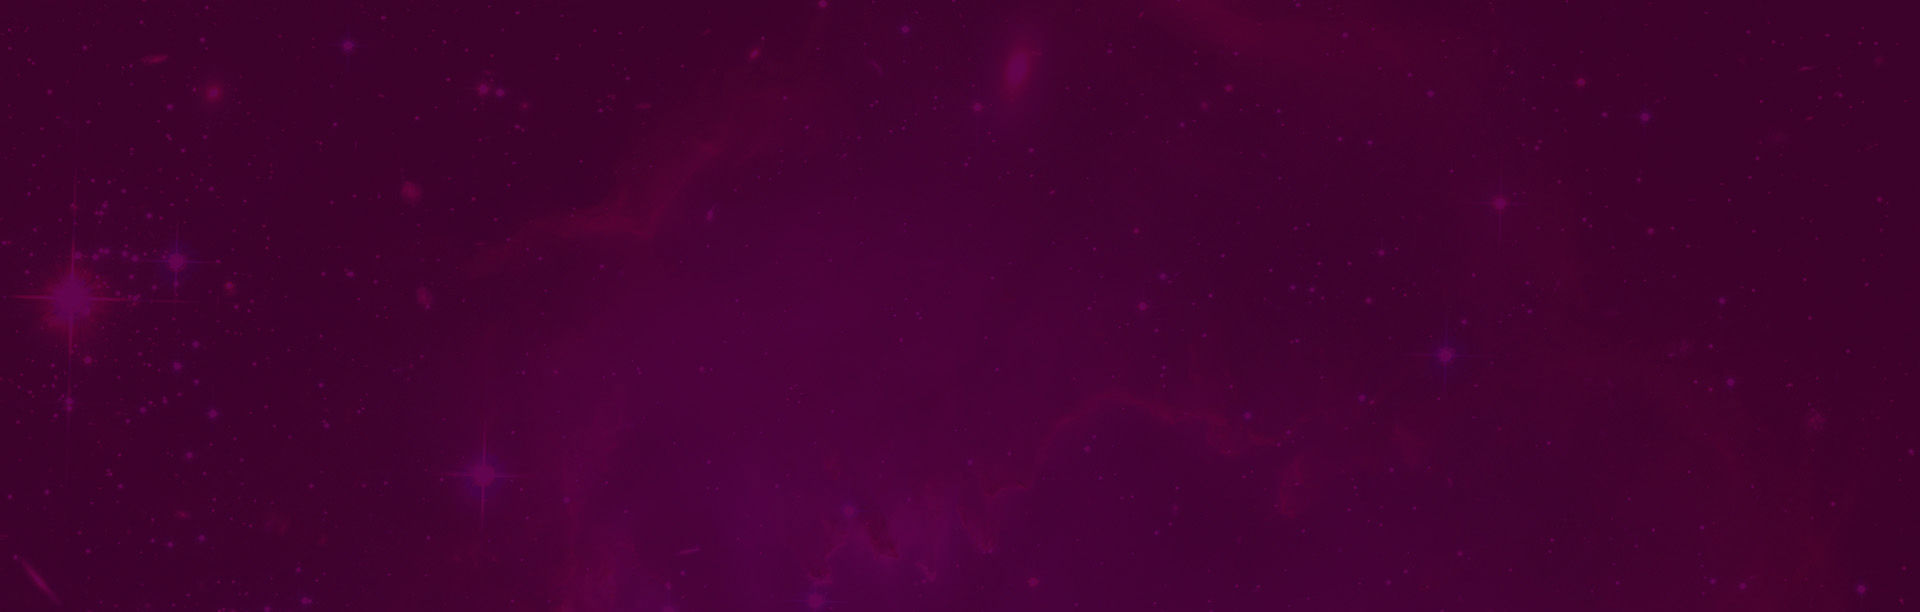 stars-background-small_1.jpg